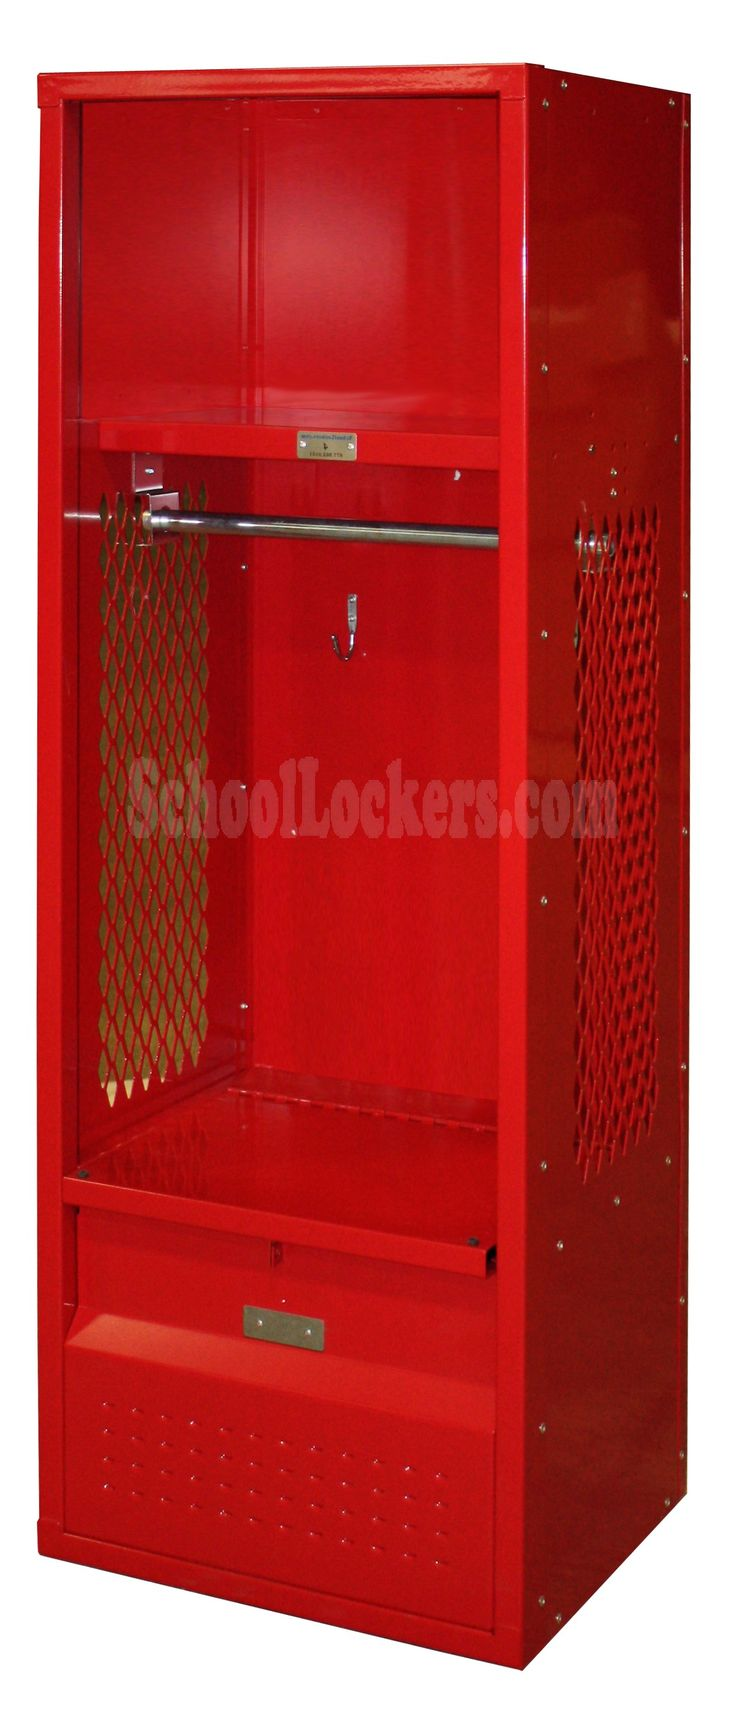 Best 20 football theme bedroom ideas on pinterest for Lockers for kids room